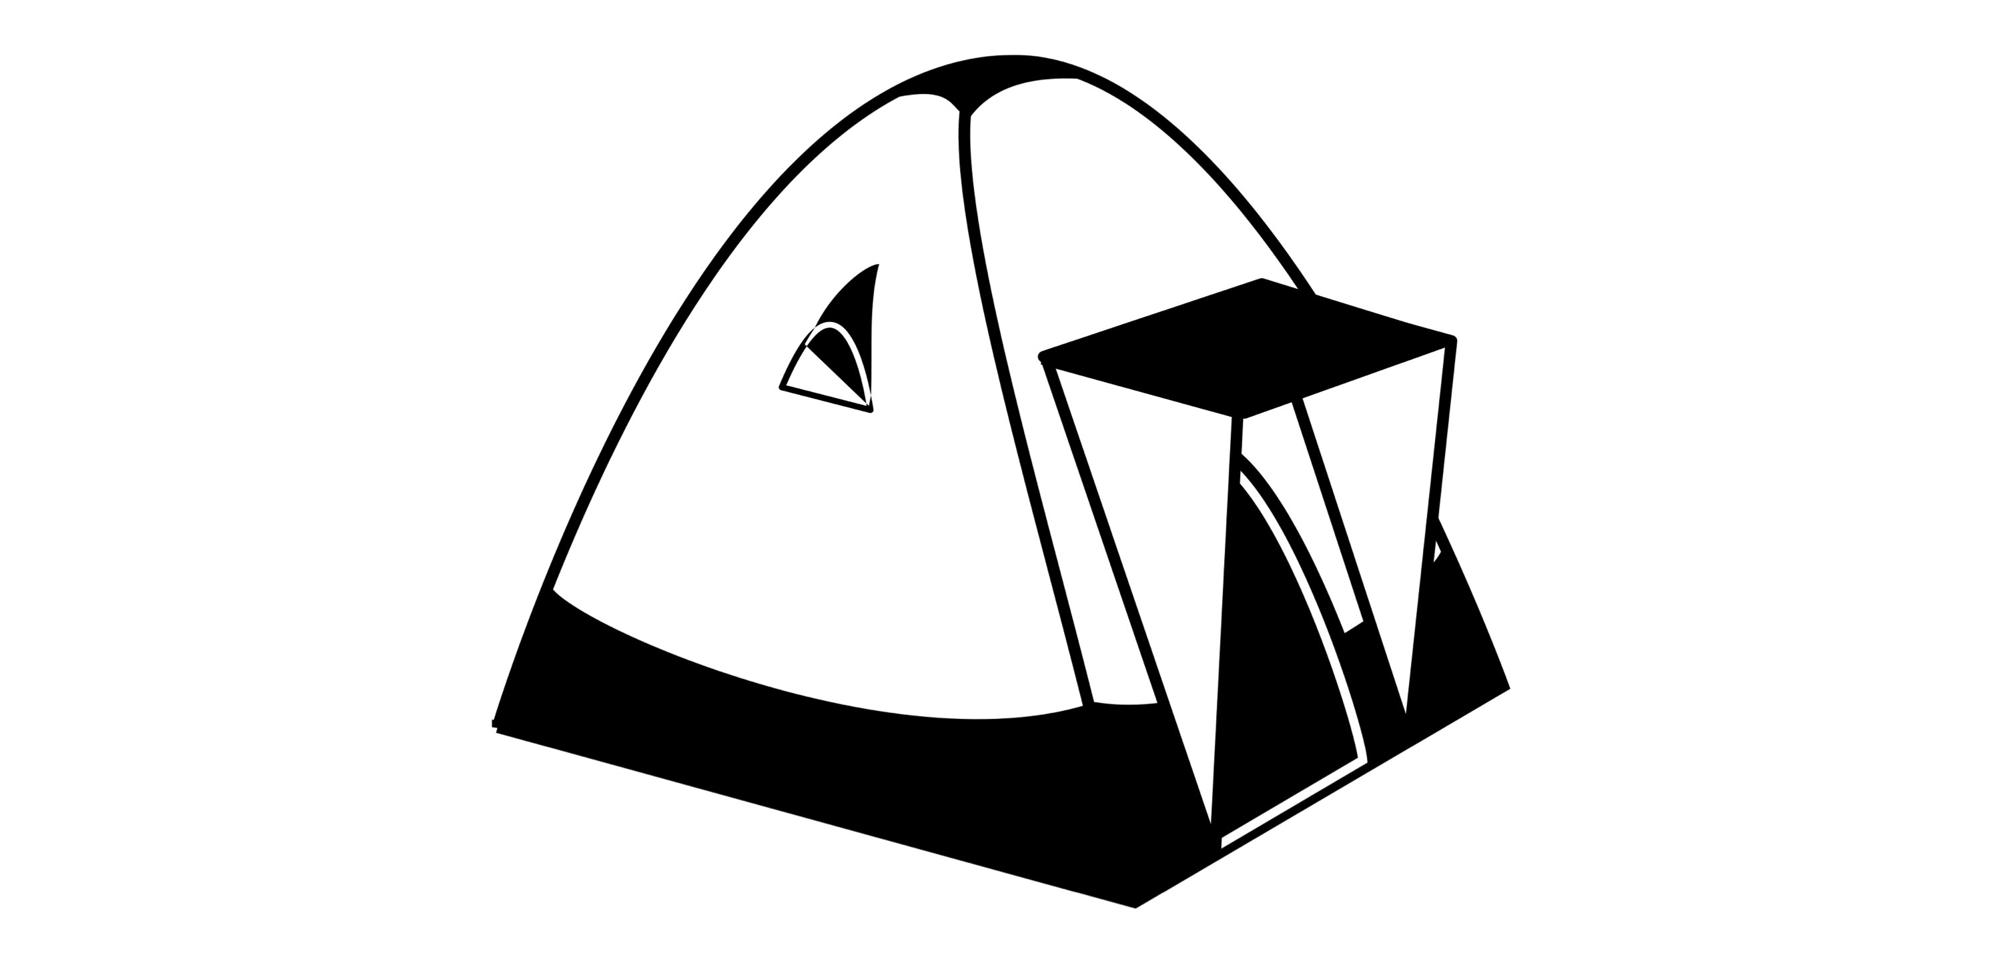 Dome tent illustration